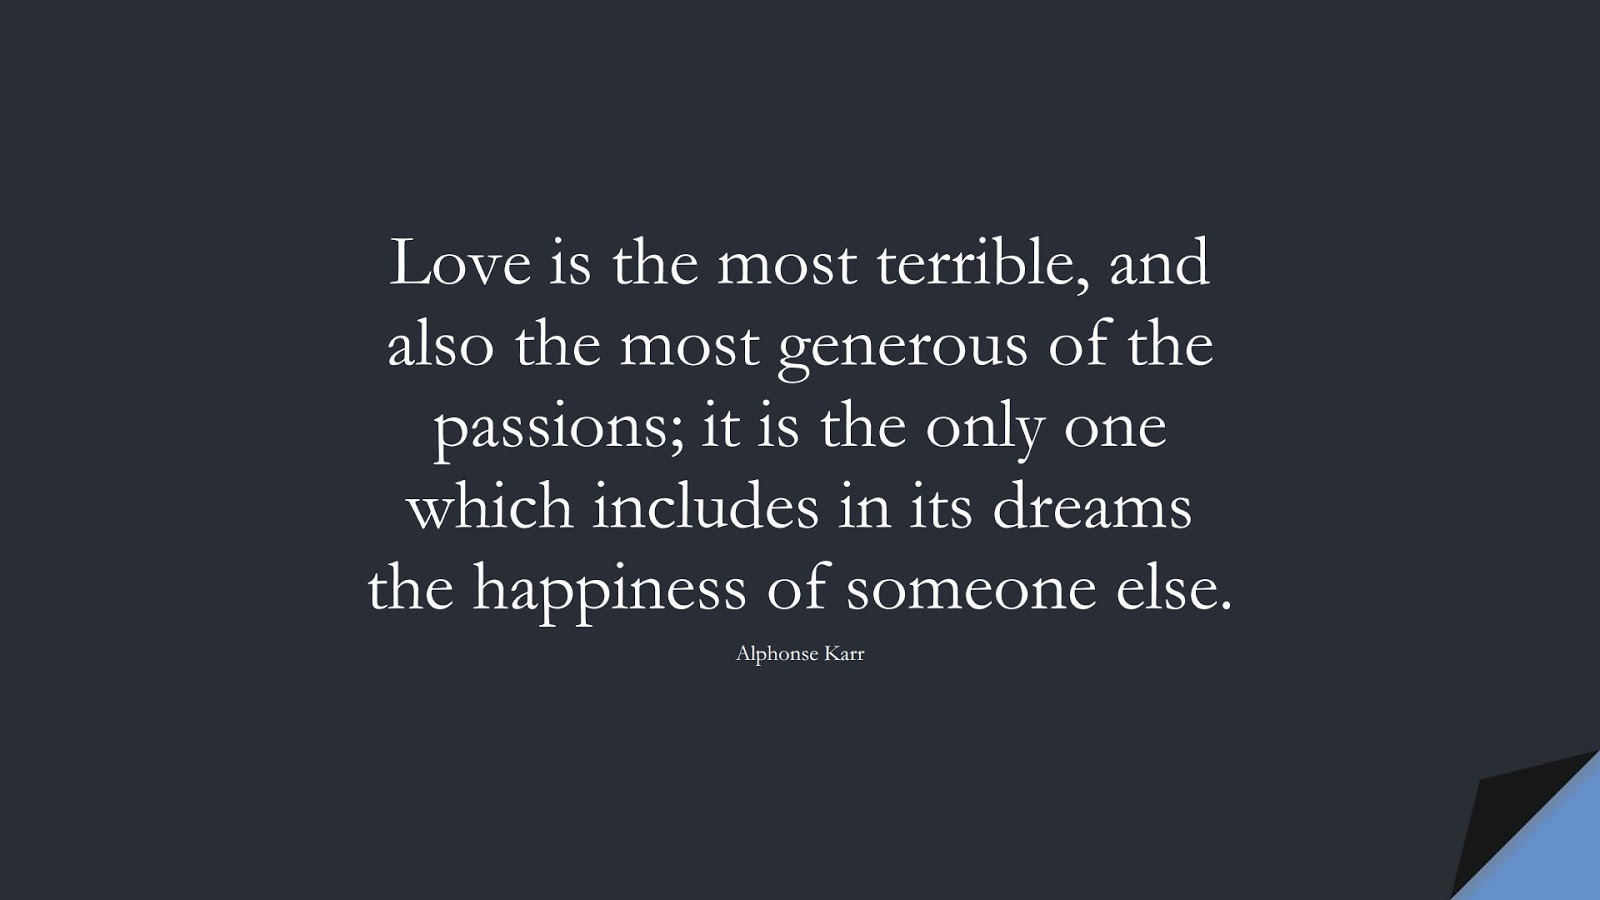 Love is the most terrible, and also the most generous of the passions; it is the only one which includes in its dreams the happiness of someone else. (Alphonse Karr);  #LoveQuotes